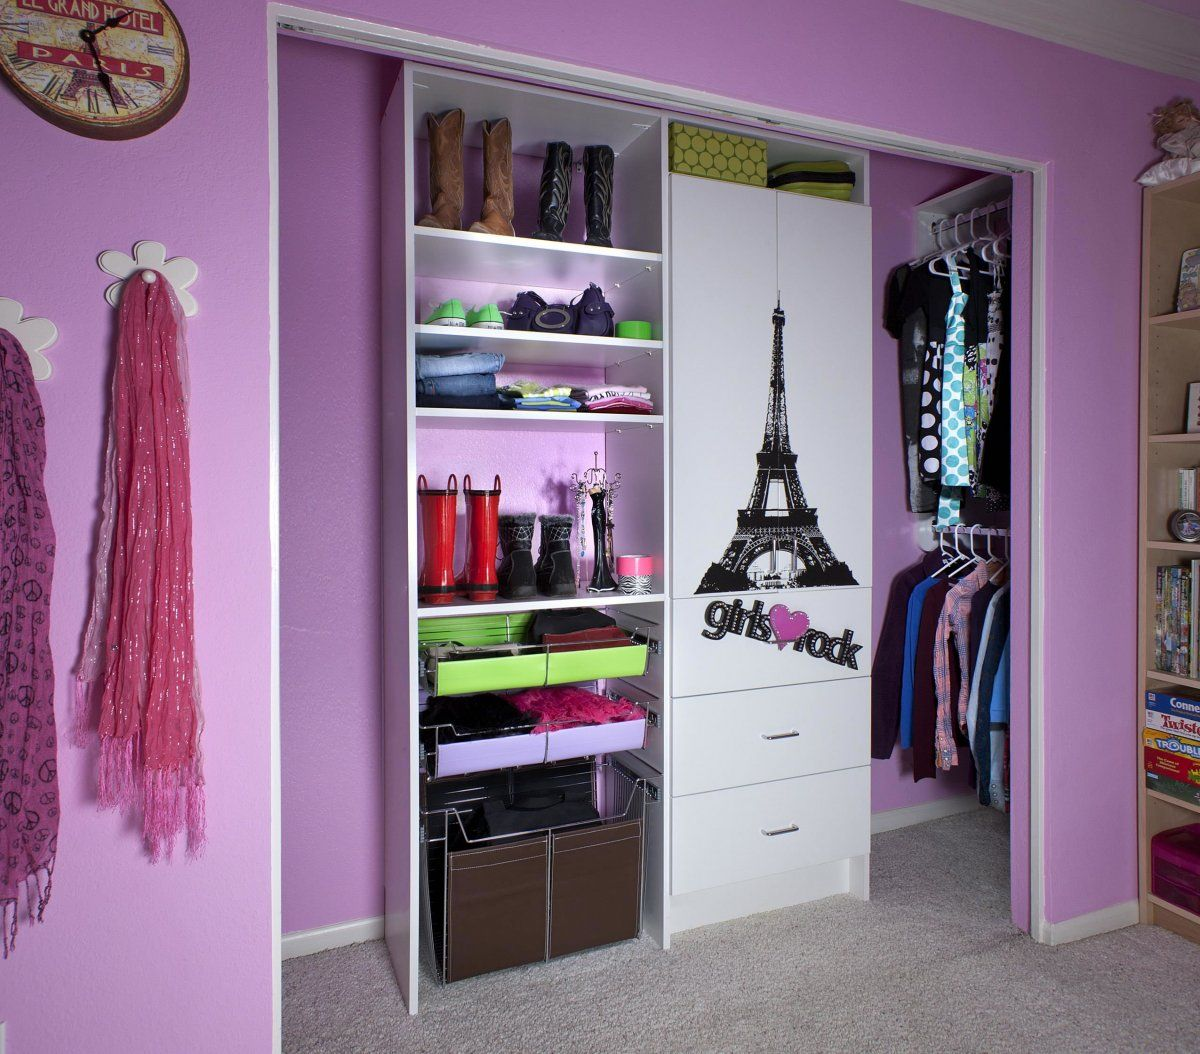 Exceptional Cute Closet Organization Ideas Part - 4: Beautiful Cute Purple-Pink Girls Closet Organizer U0026 Storage Design Ideas  For Girls Bedrooms,